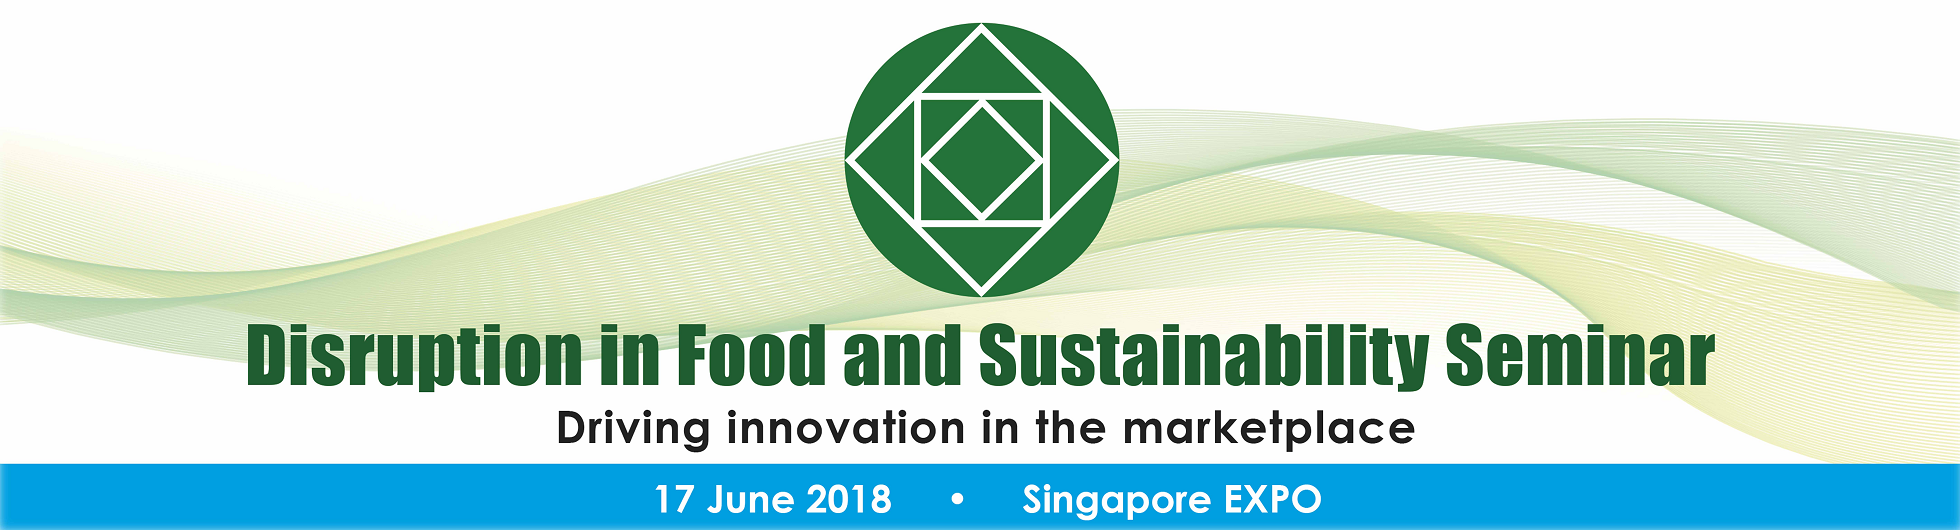 Disruption in Food & Sustainability Seminar Banner Image